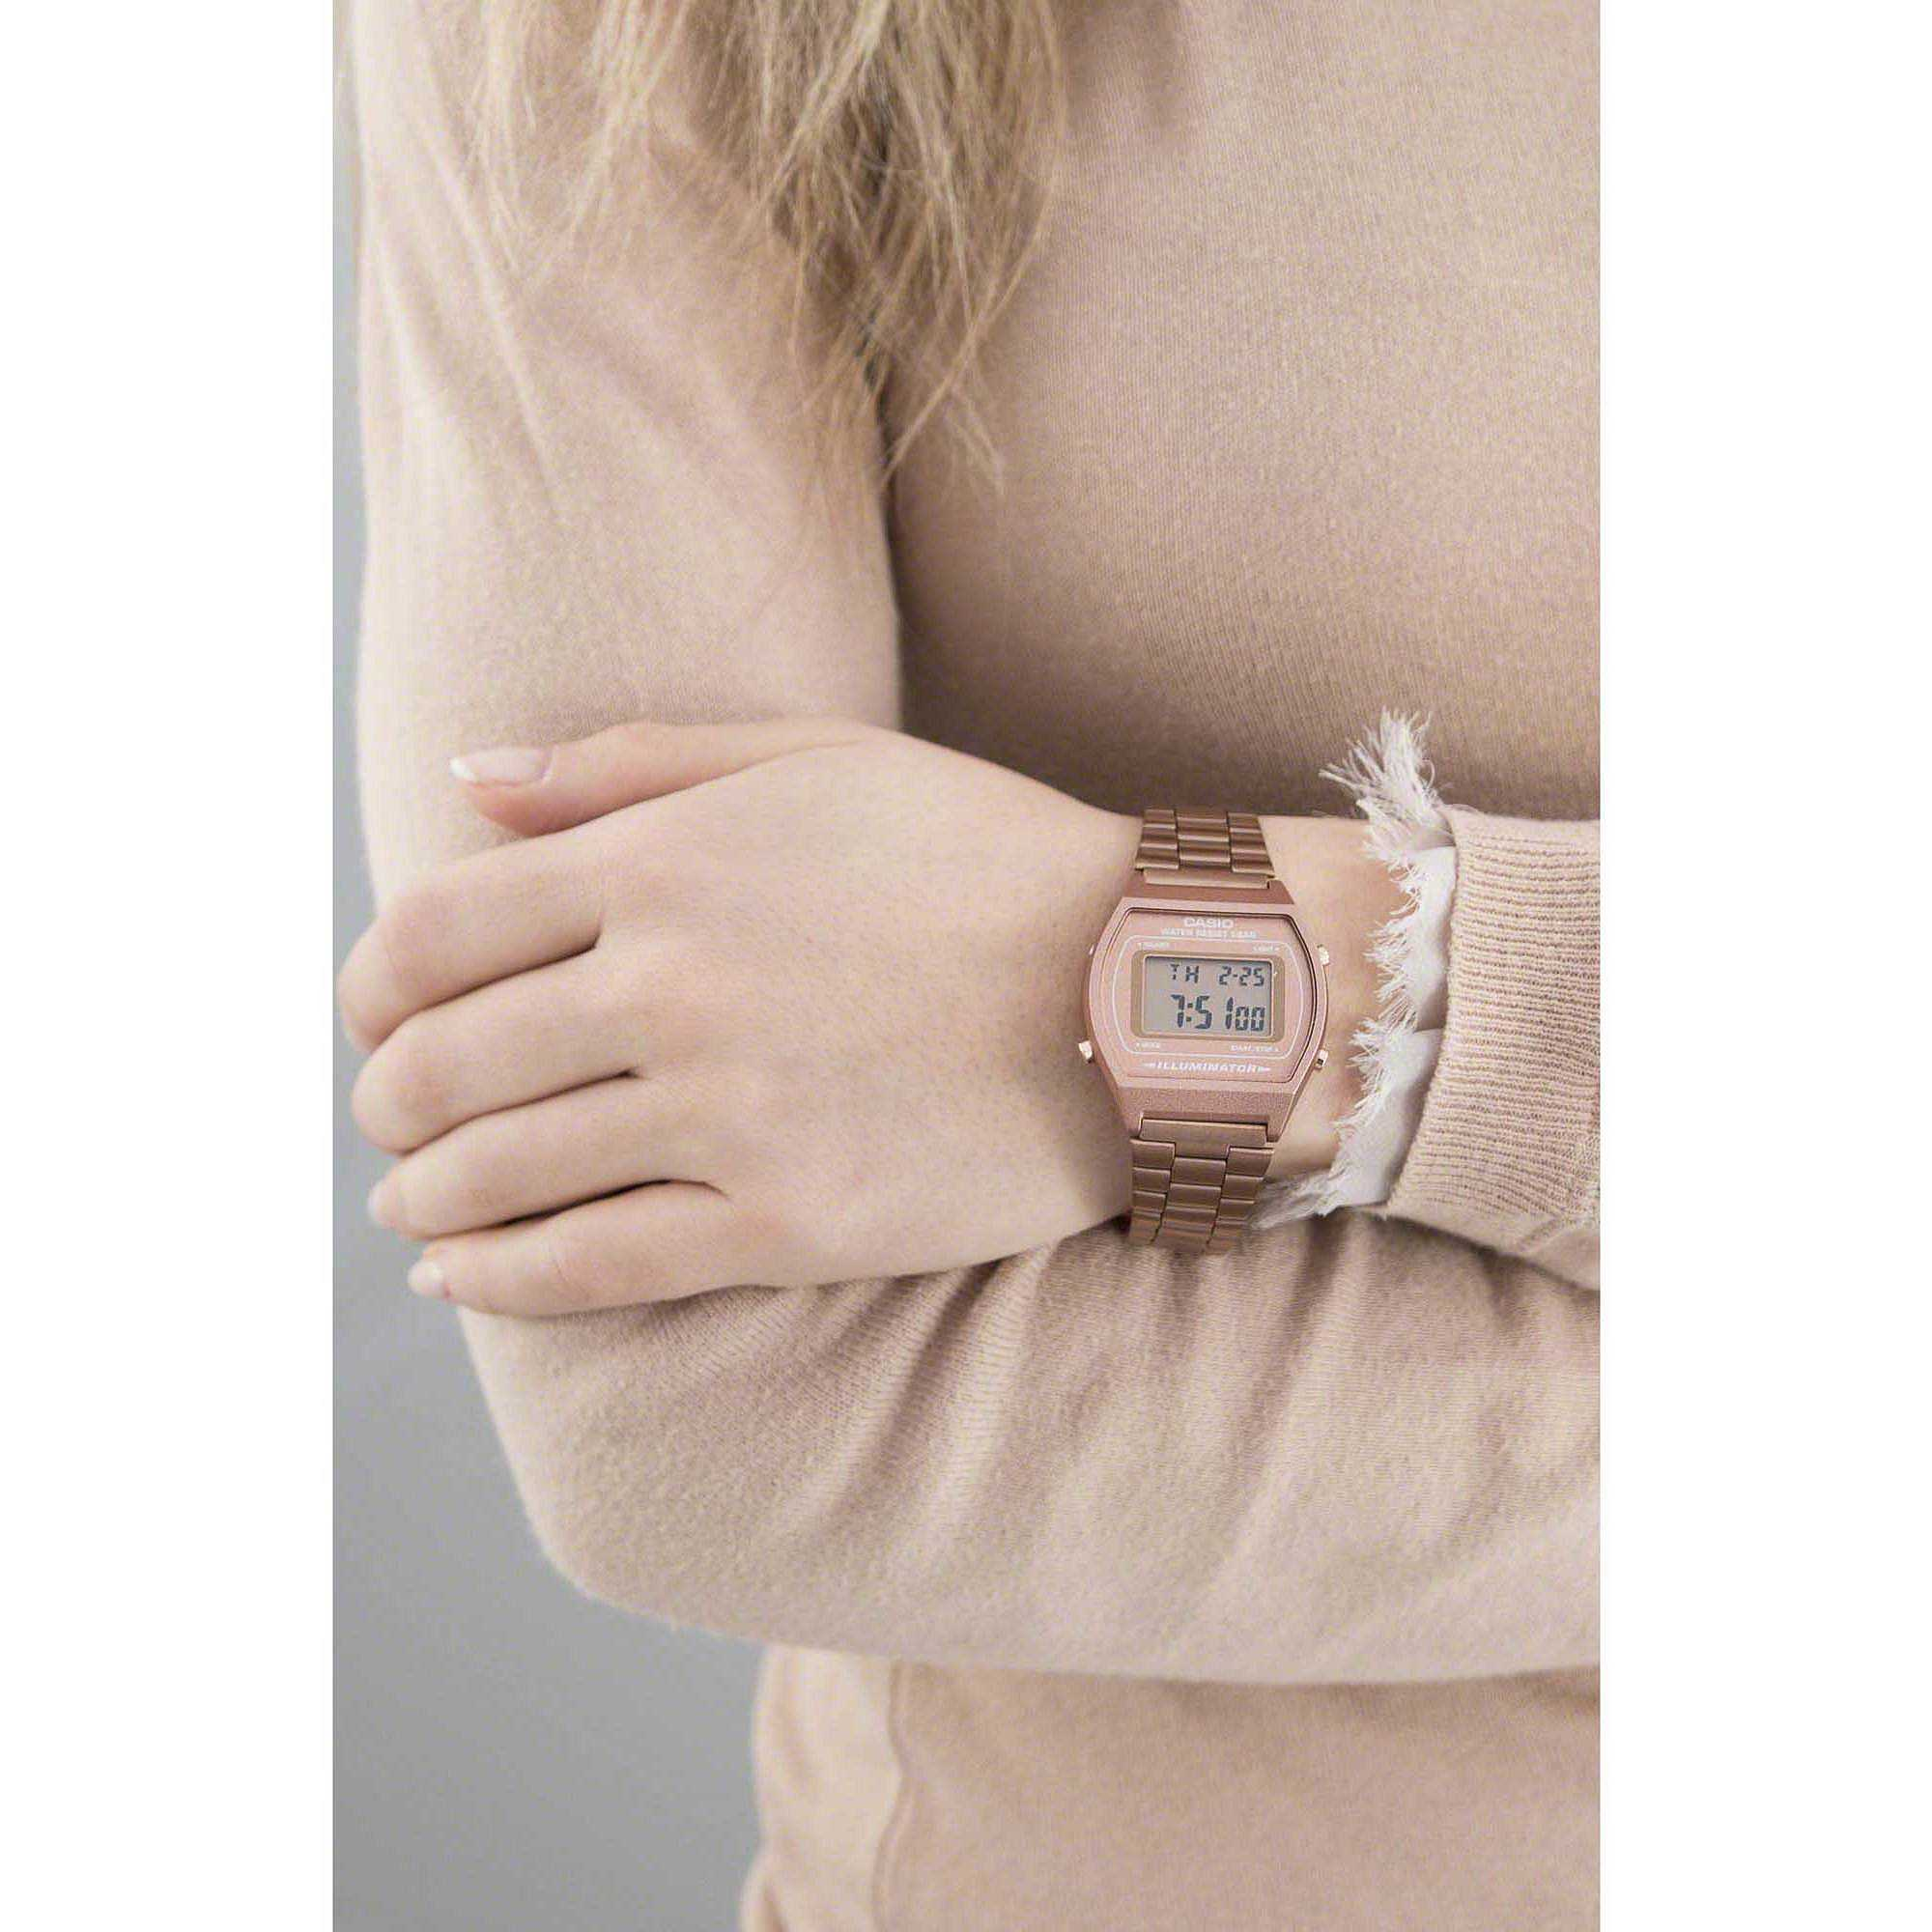 1c70a2d74aa3 Orologio Digitale Donna Casio Casio Vintage B640WC-5AEF digitali Casio